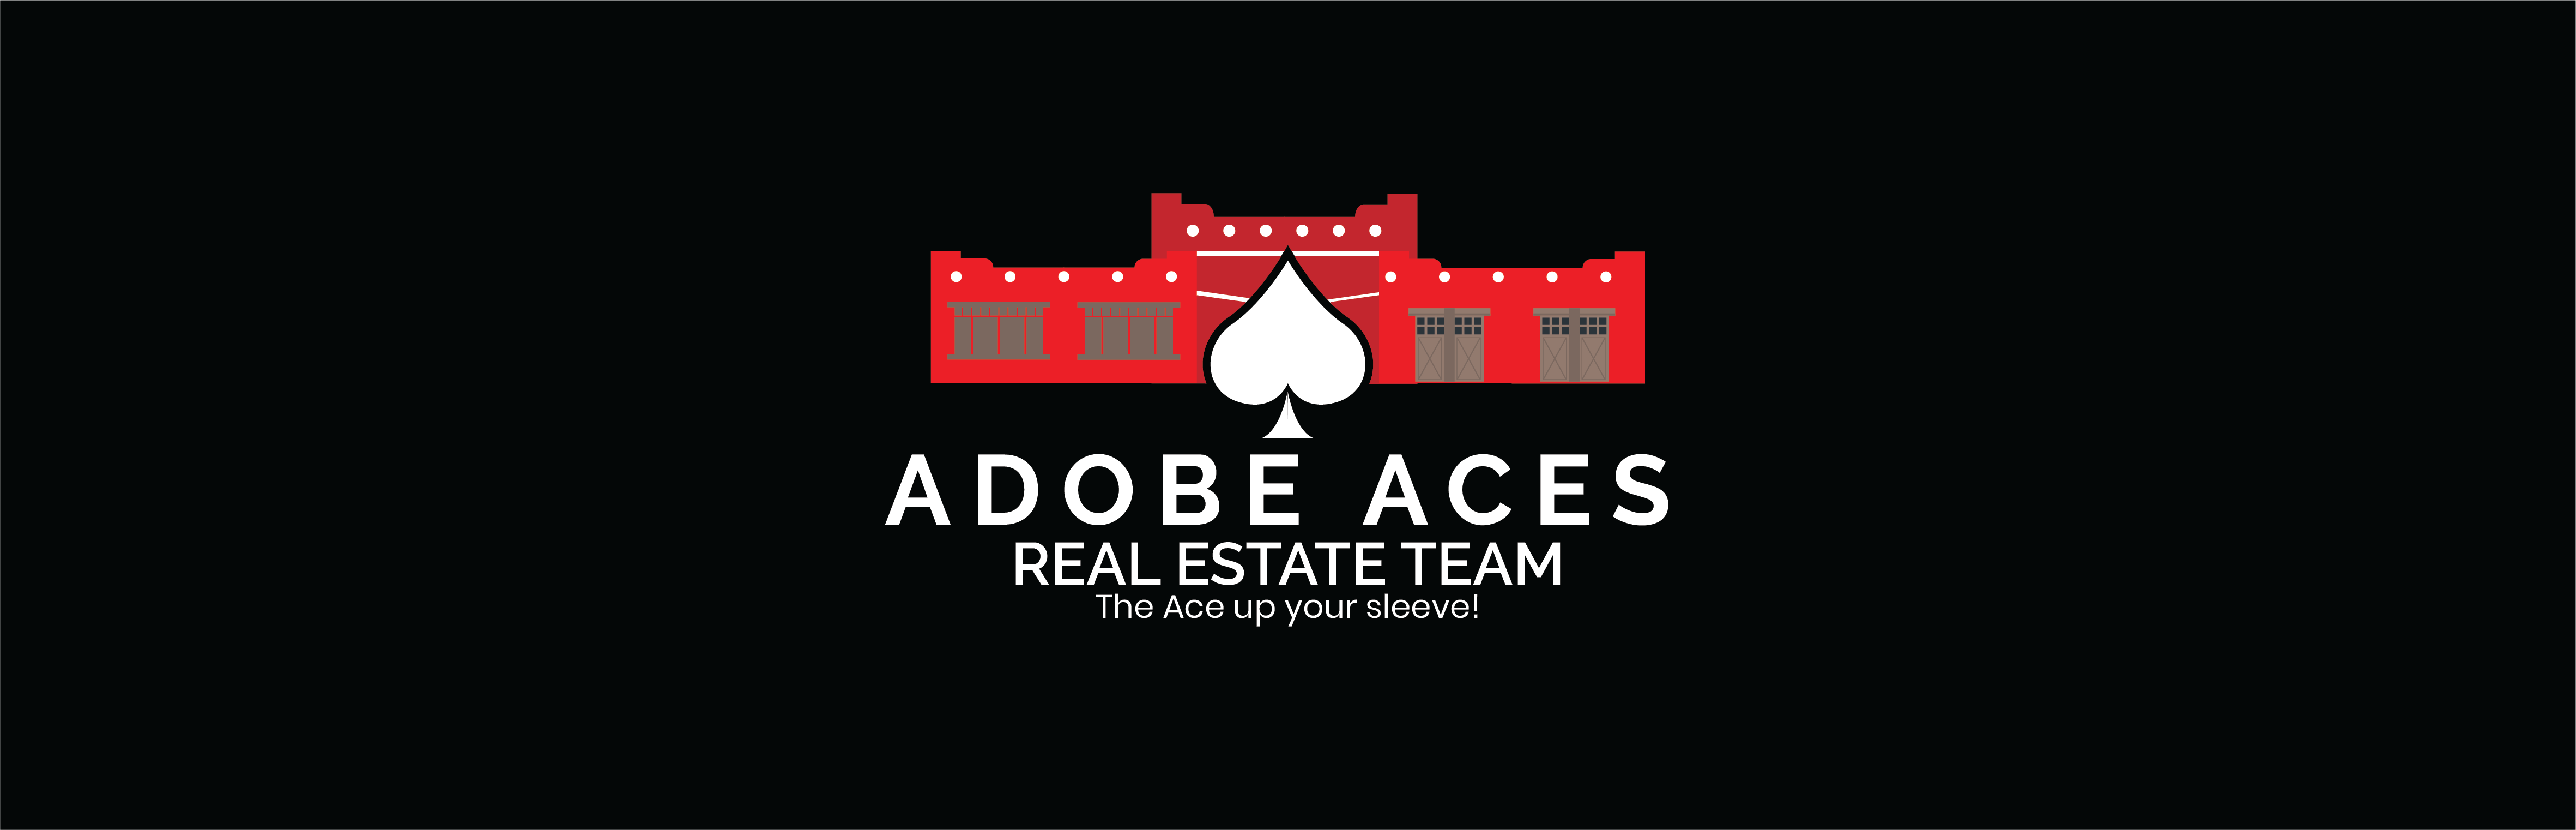 Adobe Aces Real Estate Team, LLC